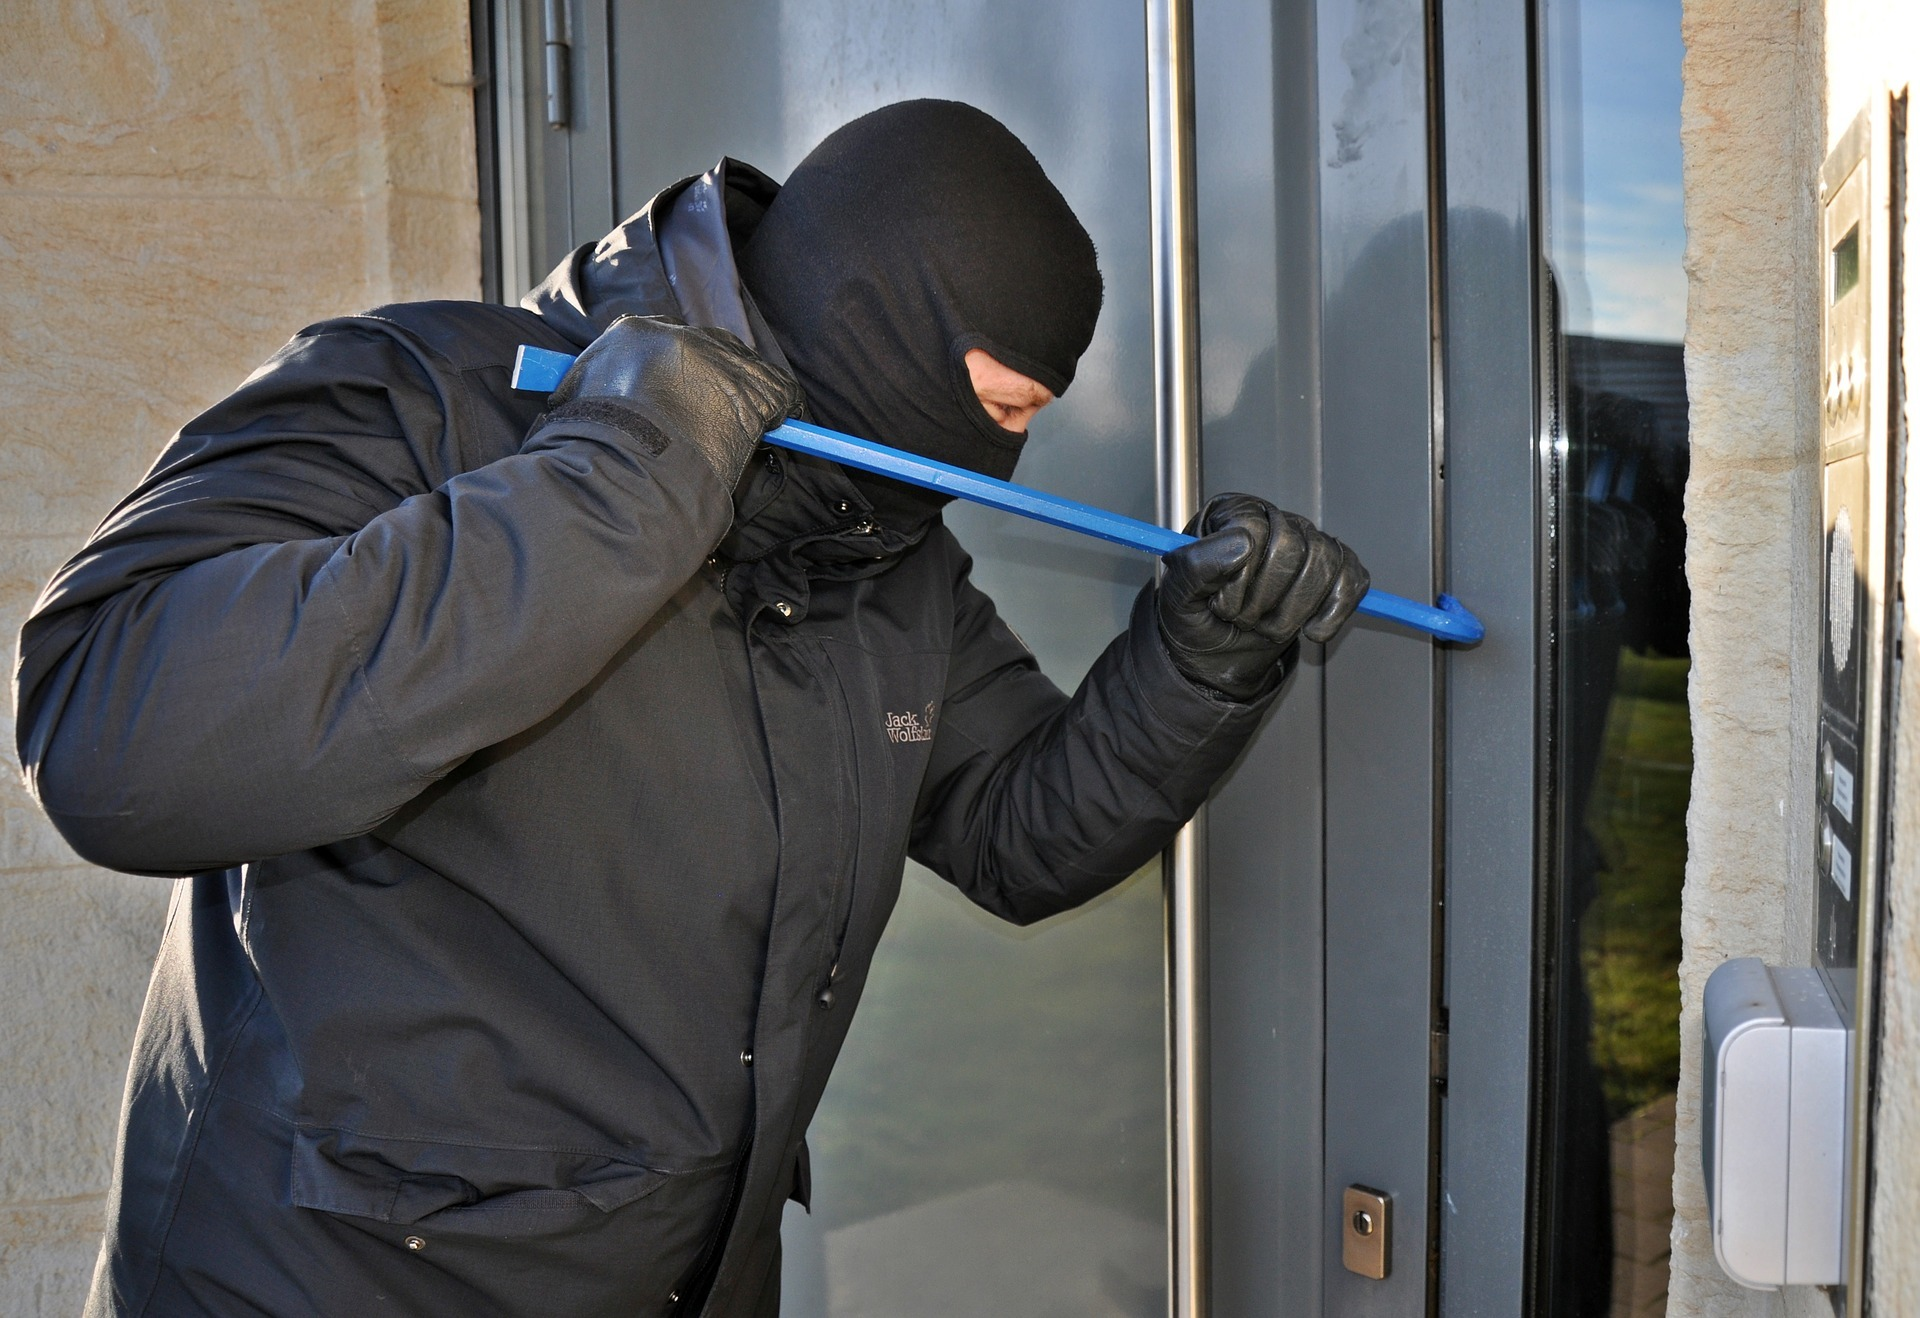 GETTING AWAY WITH IT: Shocking figures reveal how few burglars face justice